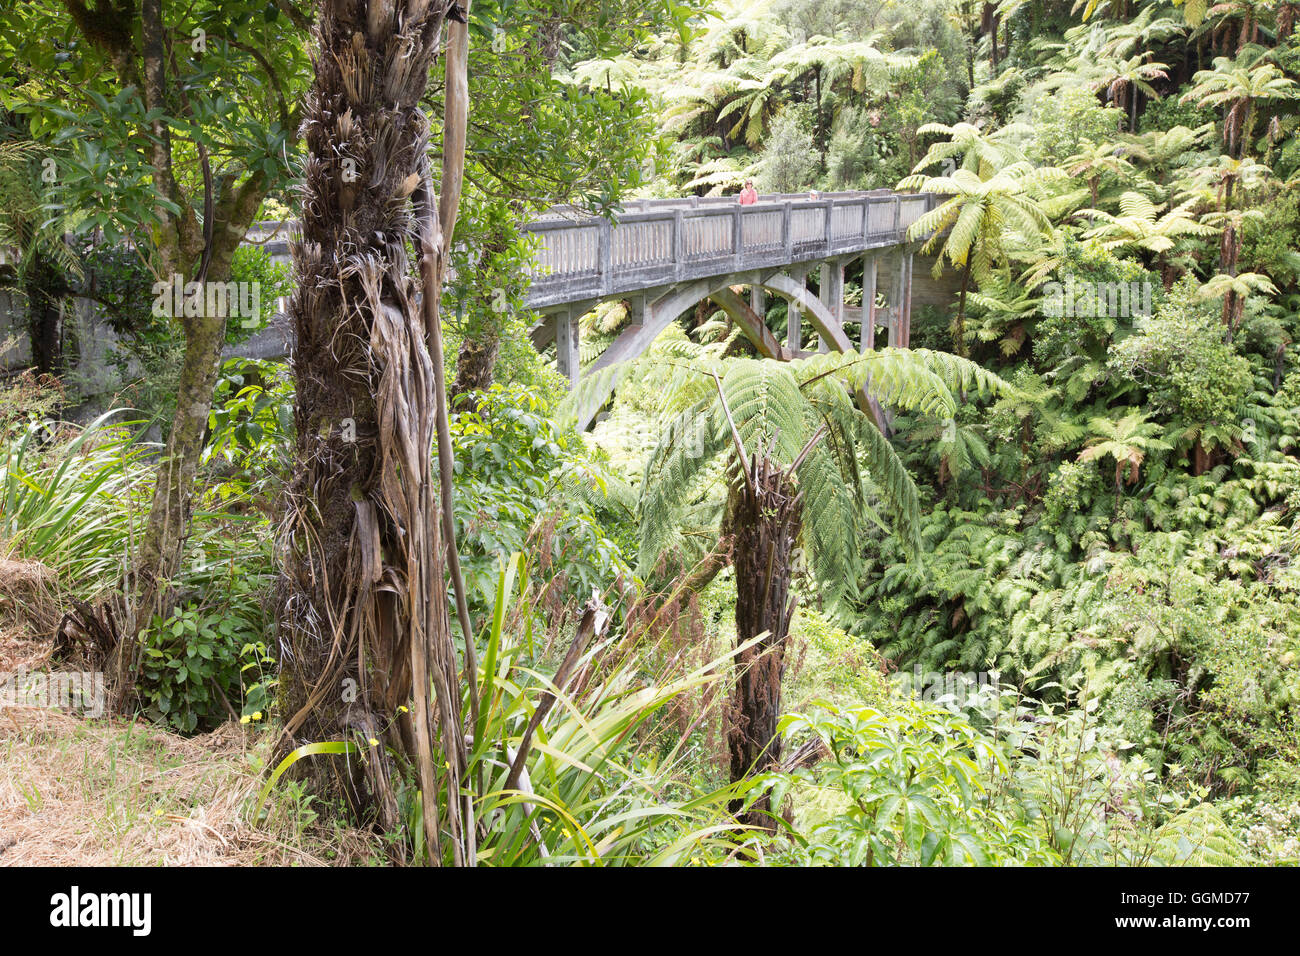 The Bridge to Nowhere, A canoe trip on the Whanganui River, North Island, New Zealand - Stock Image